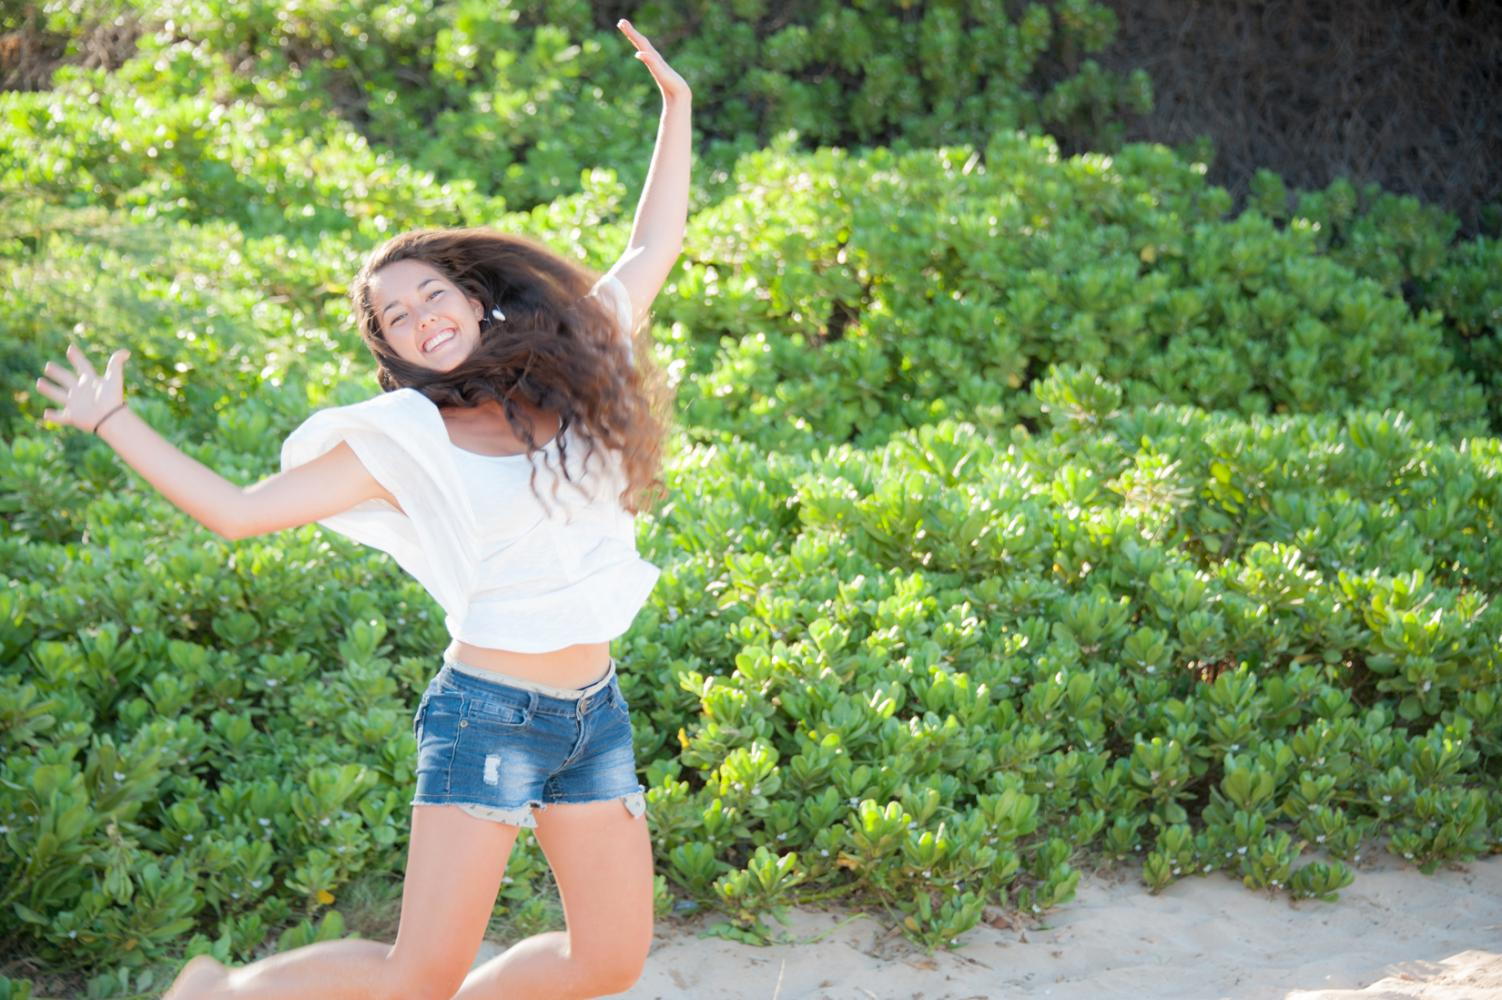 Senior Portrait, Modeling, Fashion Photographer, Beach Portrait, Editorial Photographer, Kihei, Wailea